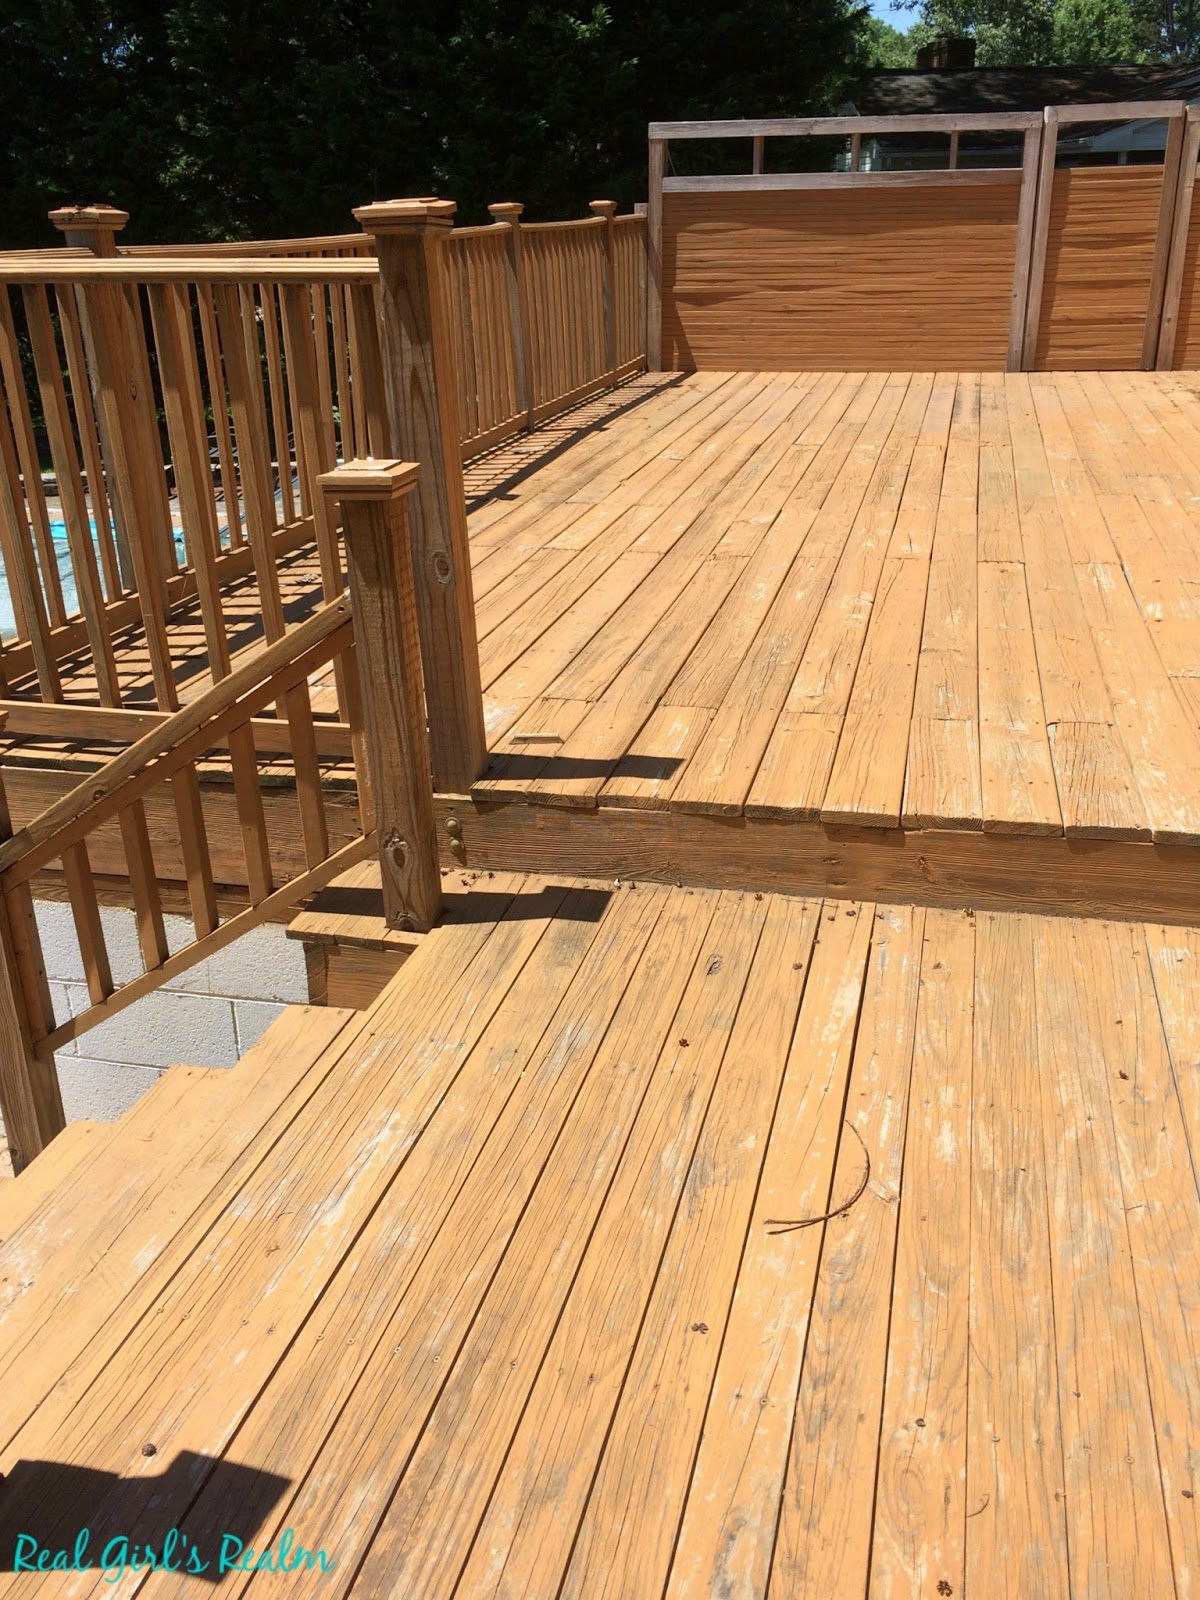 Real girls realm cleaning and staining a wood deck bring your wood deck back to life in a weekend by cleaning and staining it deck before baanklon Images